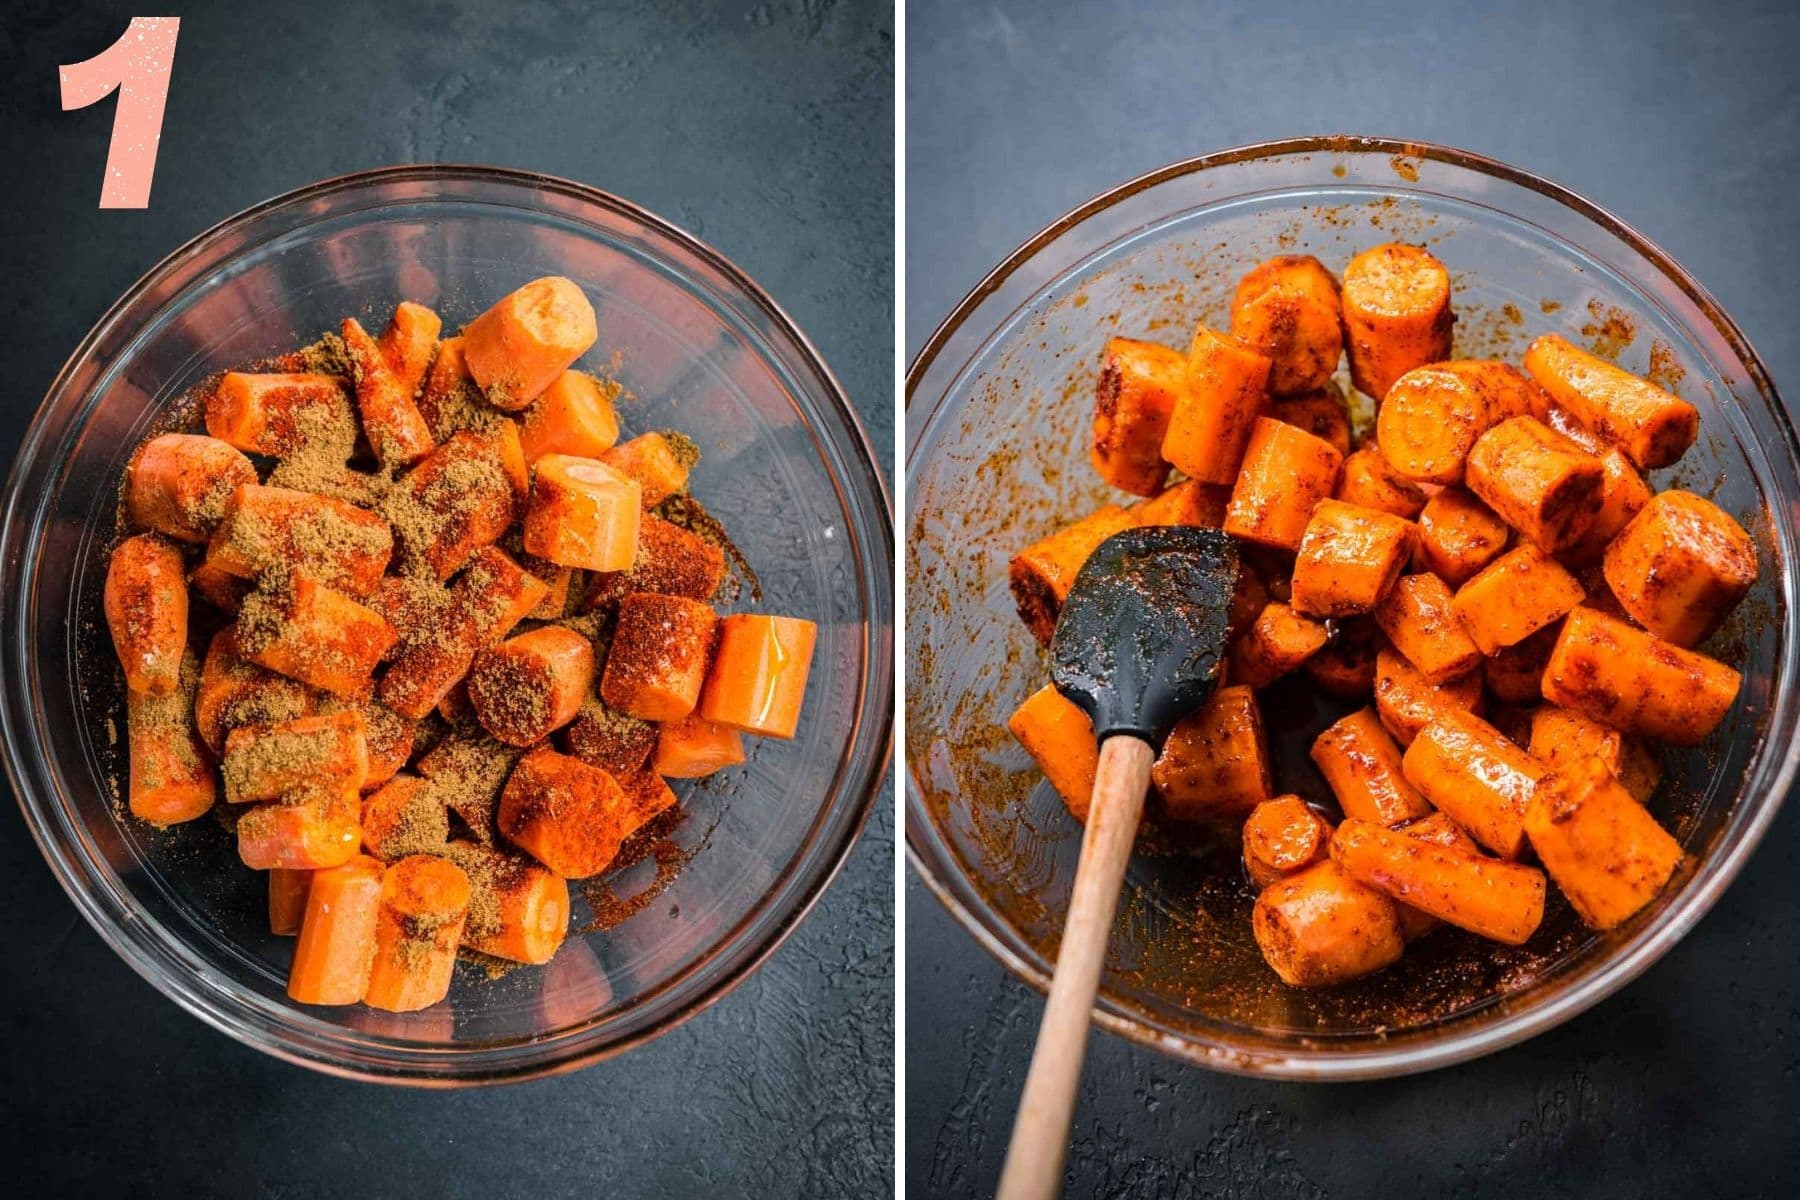 On the left: bowl of chopped carrots with spices added. On the right: carrots in a bowl after mixing.